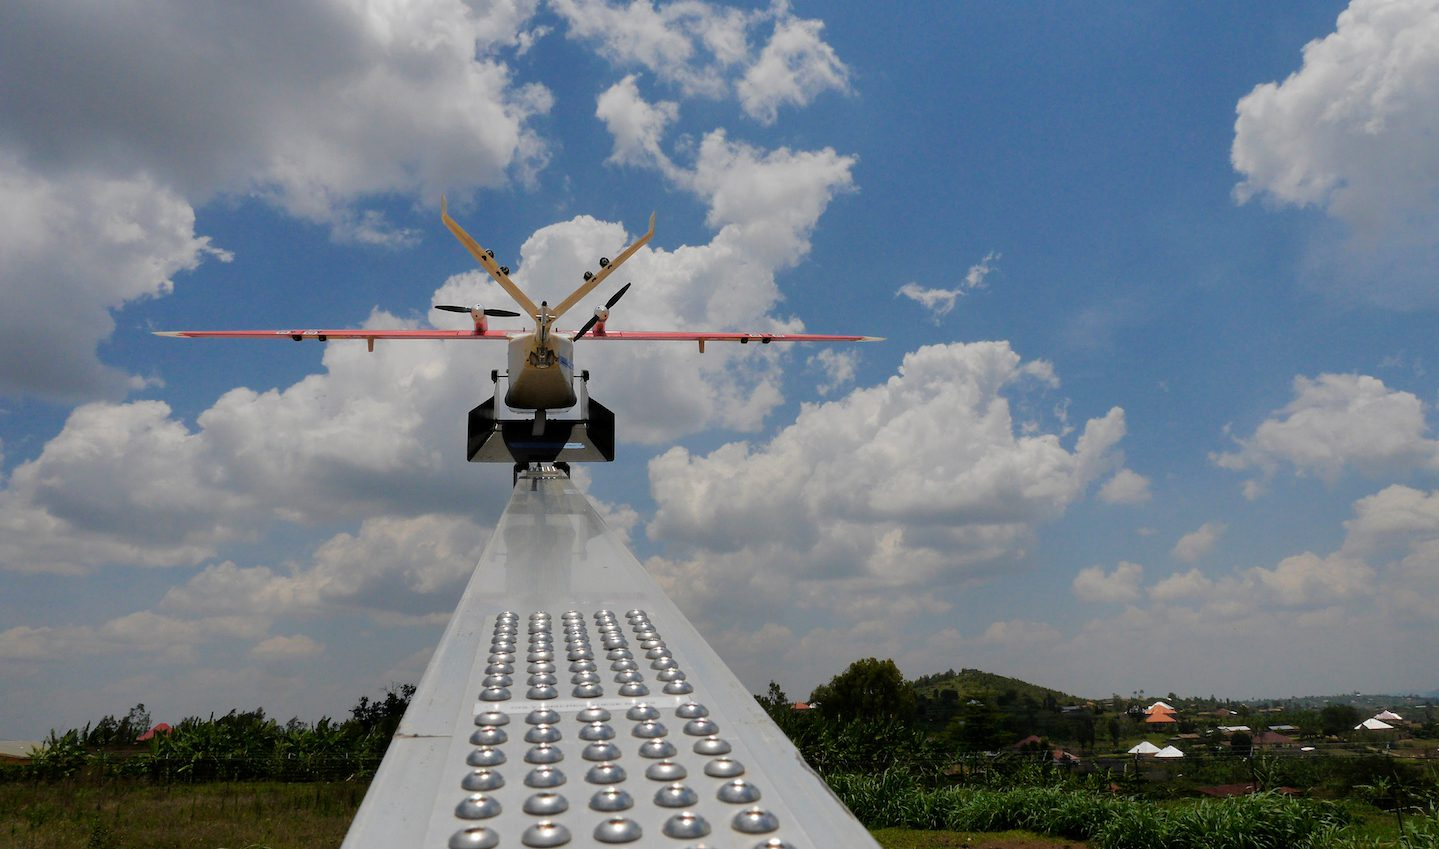 A drone is placed on a launch pad at operations center in Muhanda, south of Rwanda's capital Kigali where Zipline, a California-based robotics company delivered their first blood to patients using a drone October 12, 2016. Picture taken October 12, 2016.